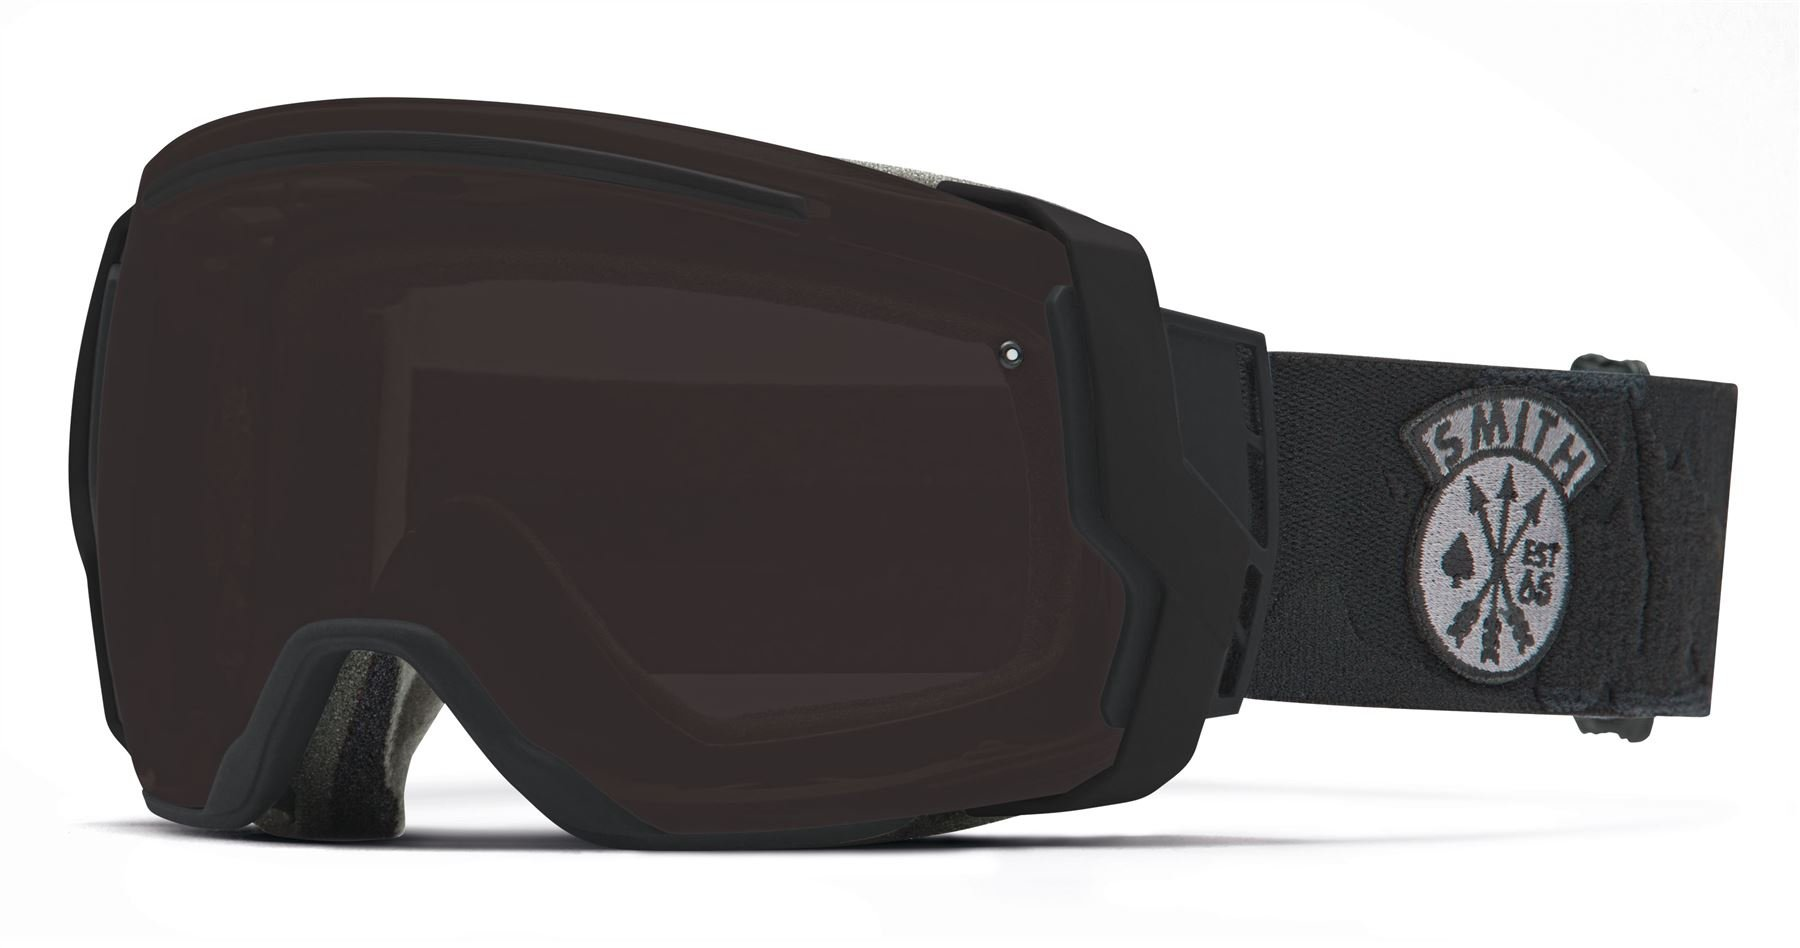 Smith Optics I/O7 Vaporator Series Snocross Snowmobile Goggles Eyewear - Black Sabotage/Blackout/Red Sensor / Medium by Smith Optics